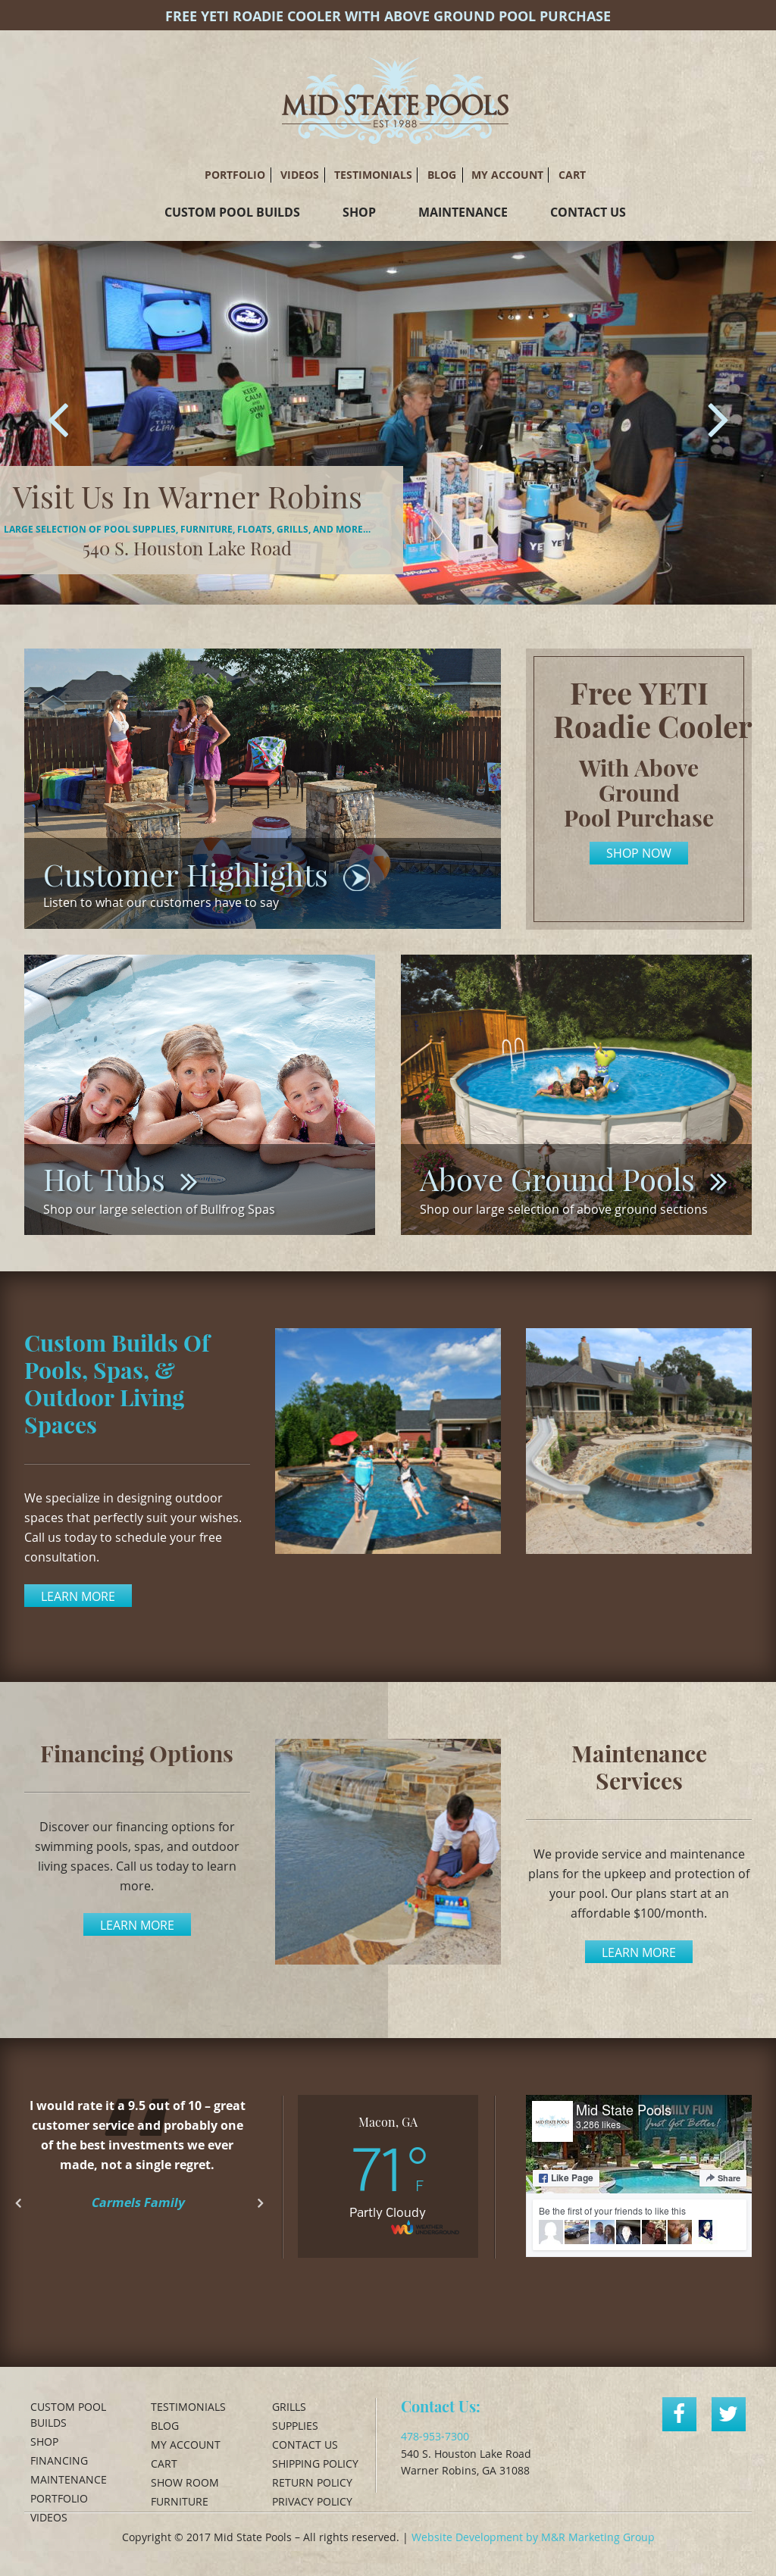 Mid State Pools And Spas Website History